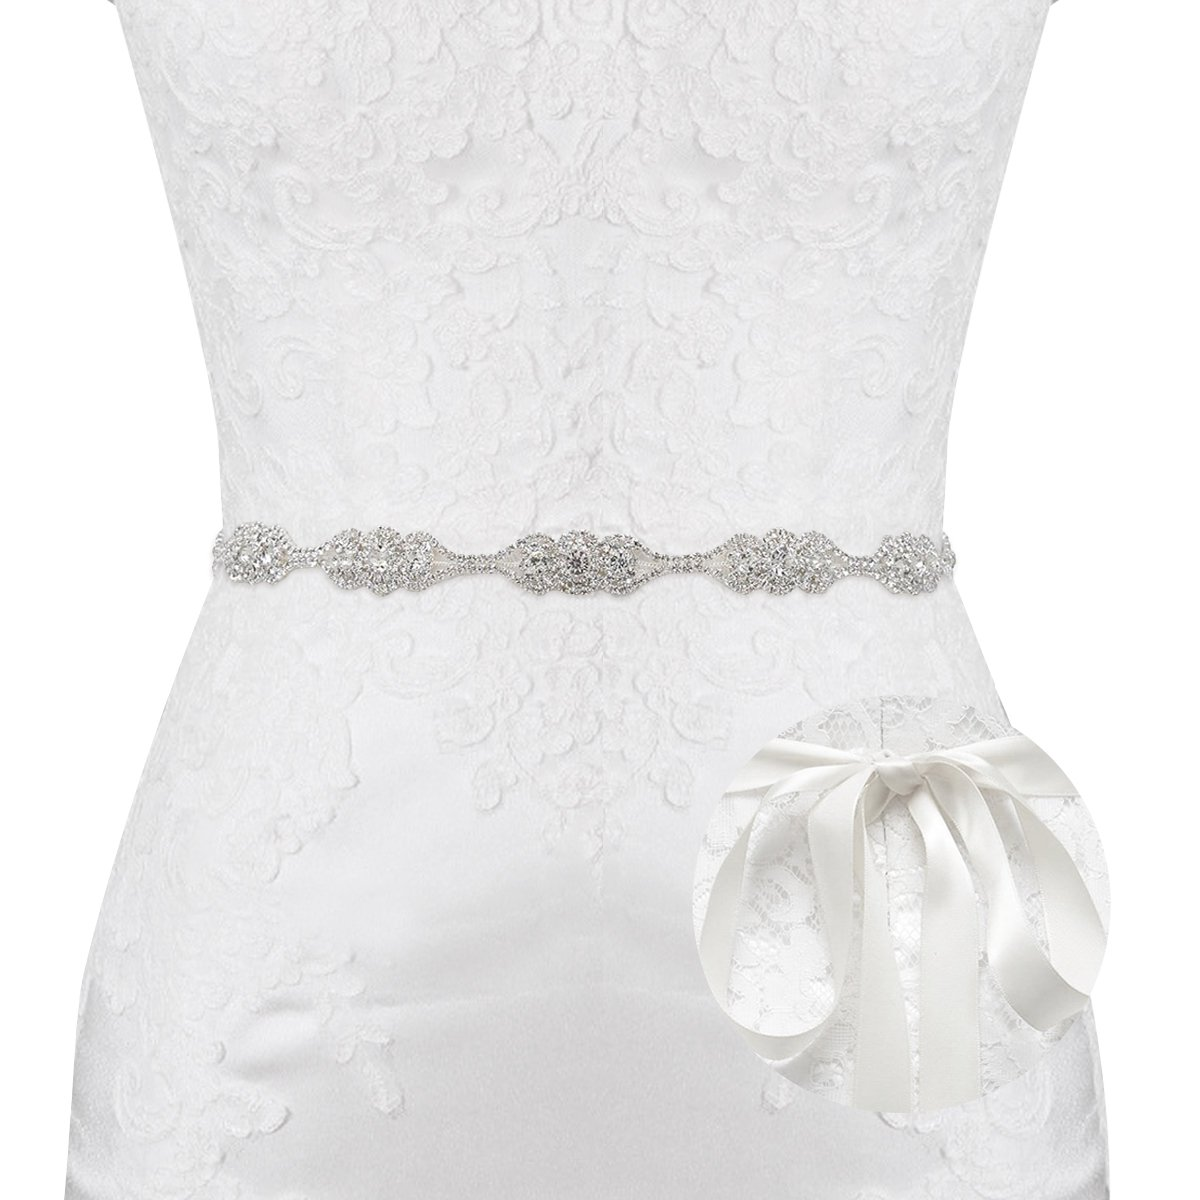 E-Clover Crystal Silver Floral Satin Bridal Sash Wedding Belt for Bride, Bridesmaid (Off-White)